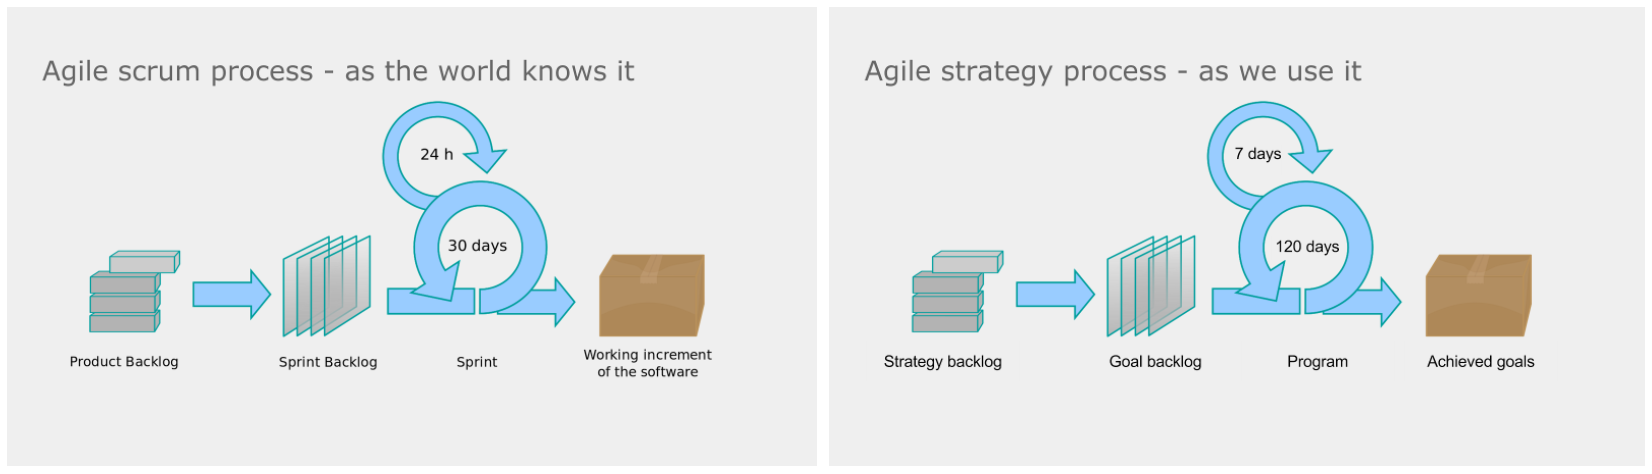 differences agile